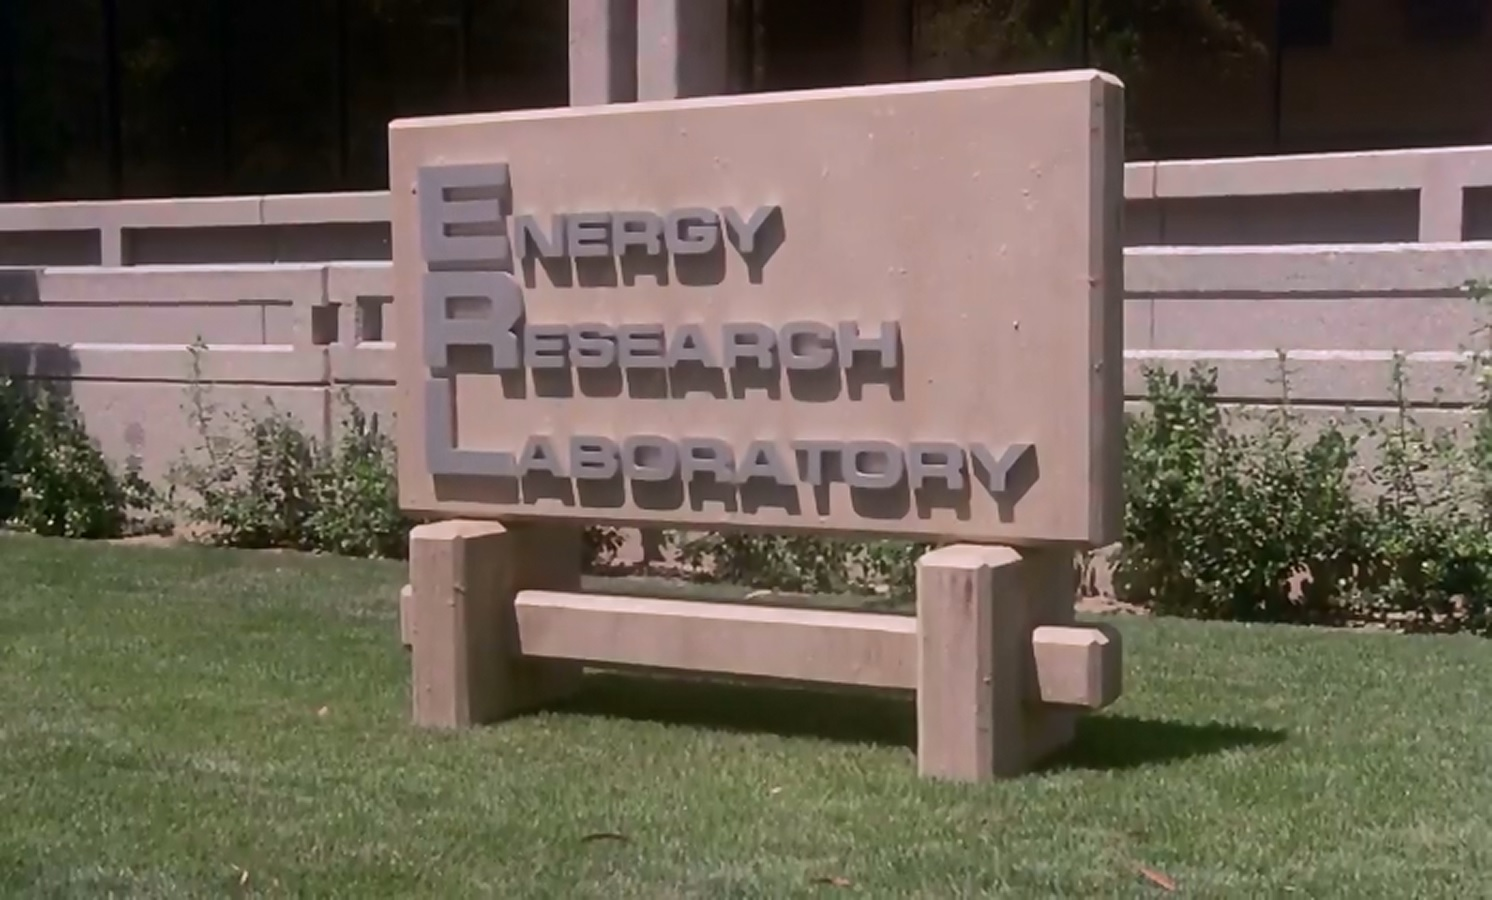 Energy Research Laboratory